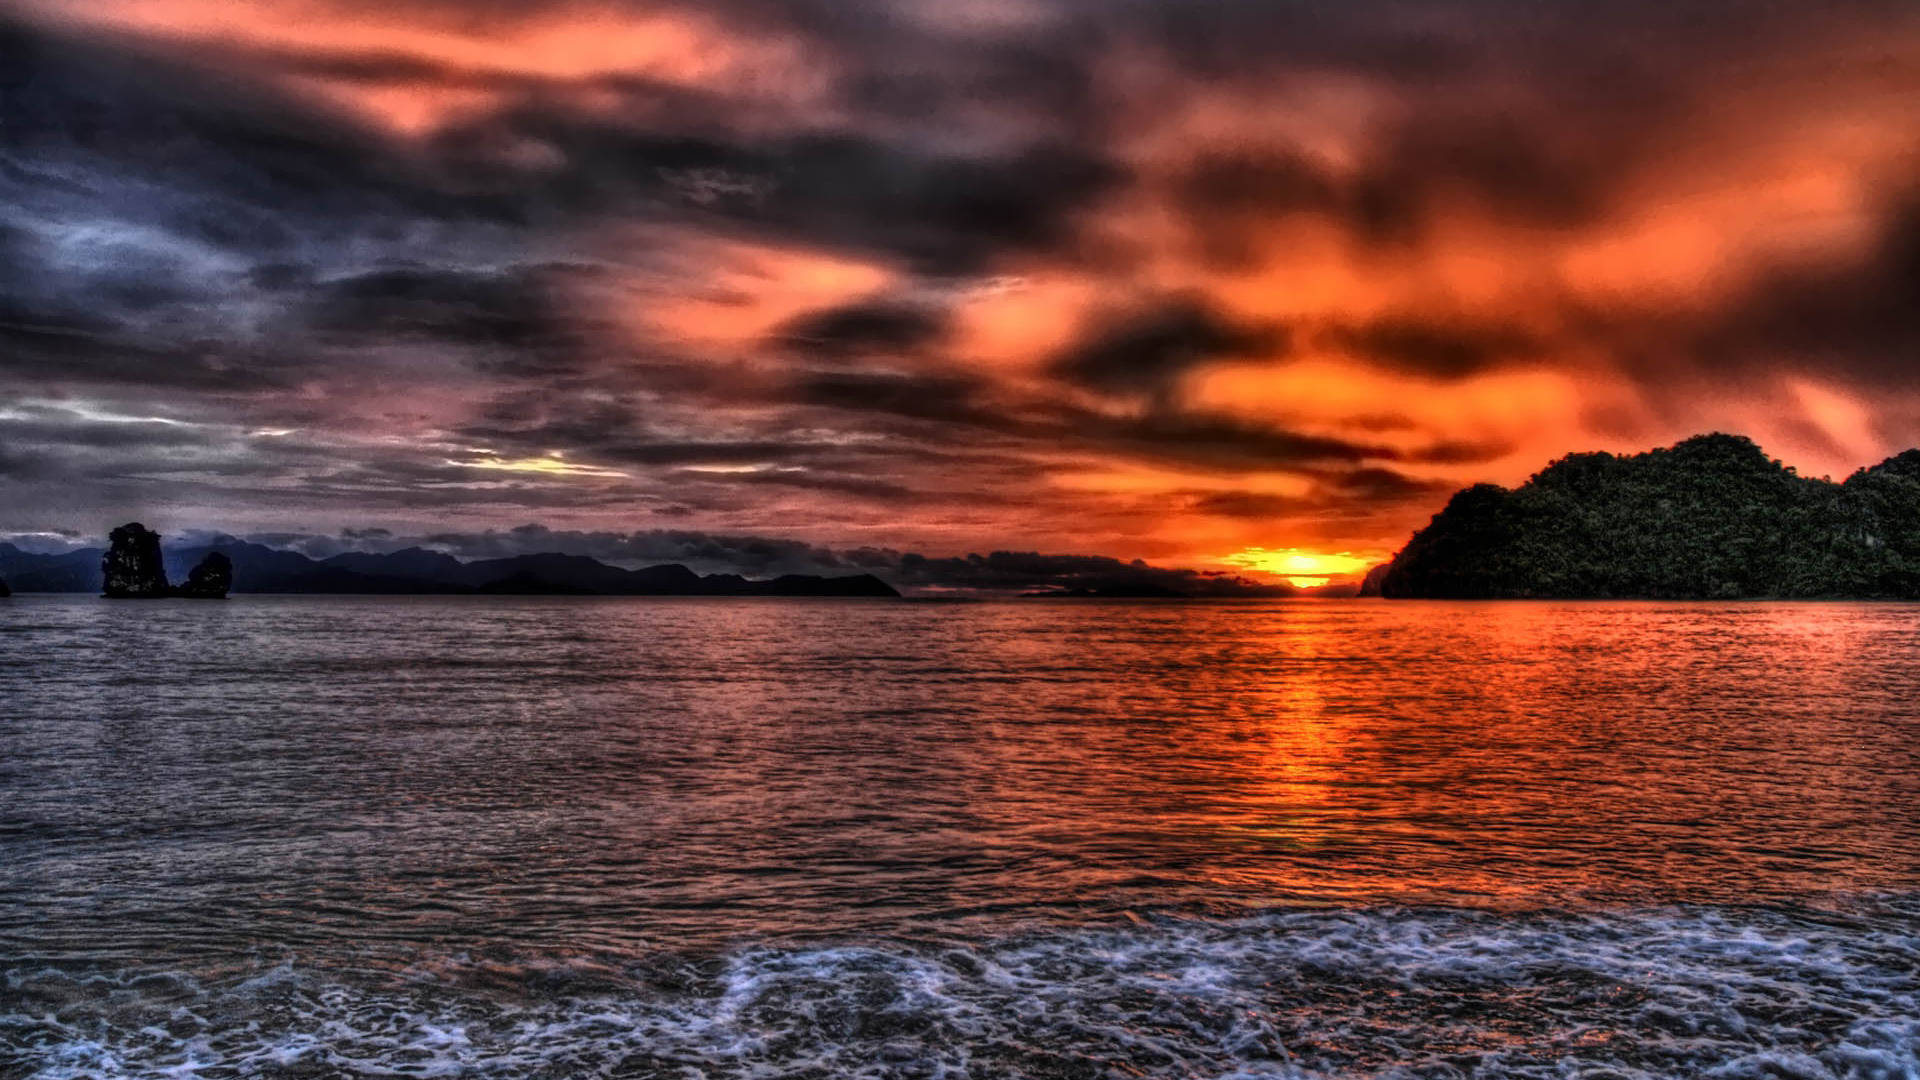 Sunset Beach Wallpaper HD   bsrlorg 1920x1080